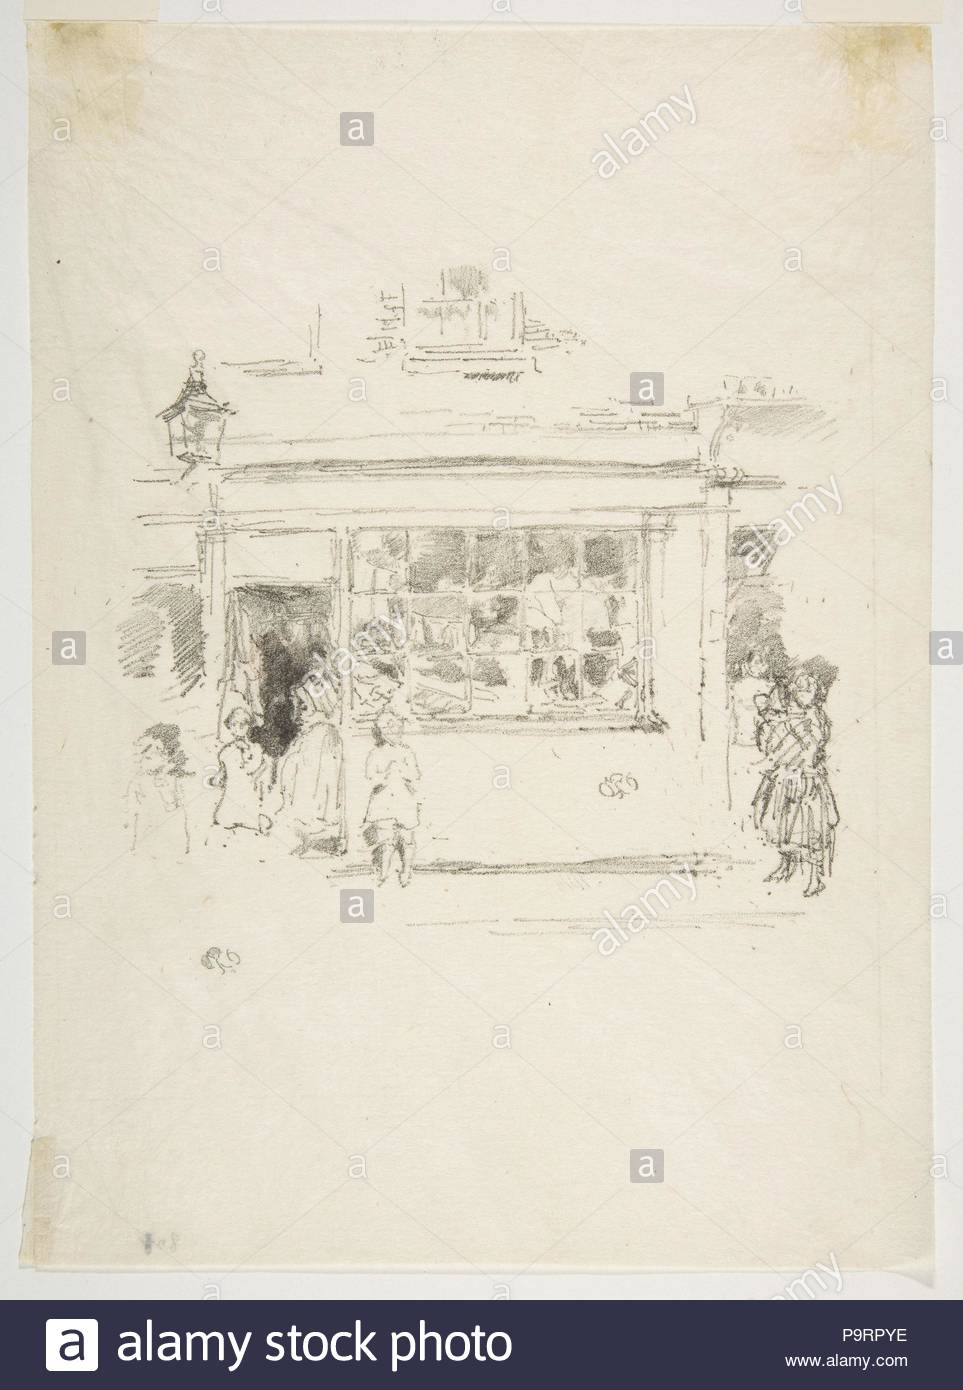 Drury Lane Rags, 1888, Transfer lithograph, drawn on medium-grain transfer paper; only state (Chicago), Image: 5 13/16 × 6 5/16 in. (14.7 × 16 cm), Prints, James McNeill Whistler (American, Lowell, Massachusetts 1834–1903 London). - Stock Image